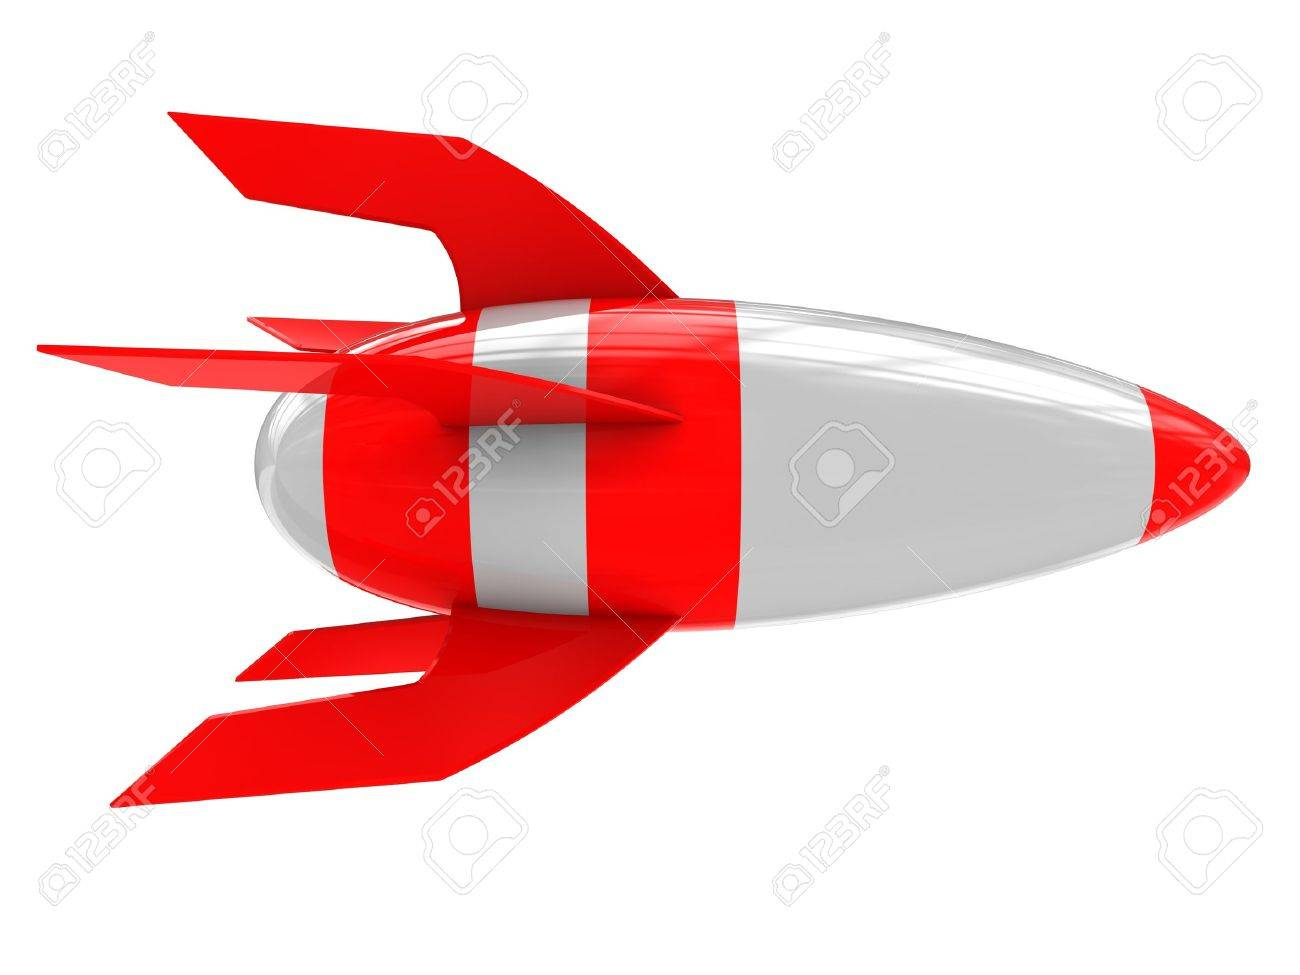 http://previews.123rf.com/images/madmaxer/madmaxer1008/madmaxer100800141/7629440-3d-illustration-of-cartoon-rocket-isolated-over-white-background-Stock-Photo.jpg